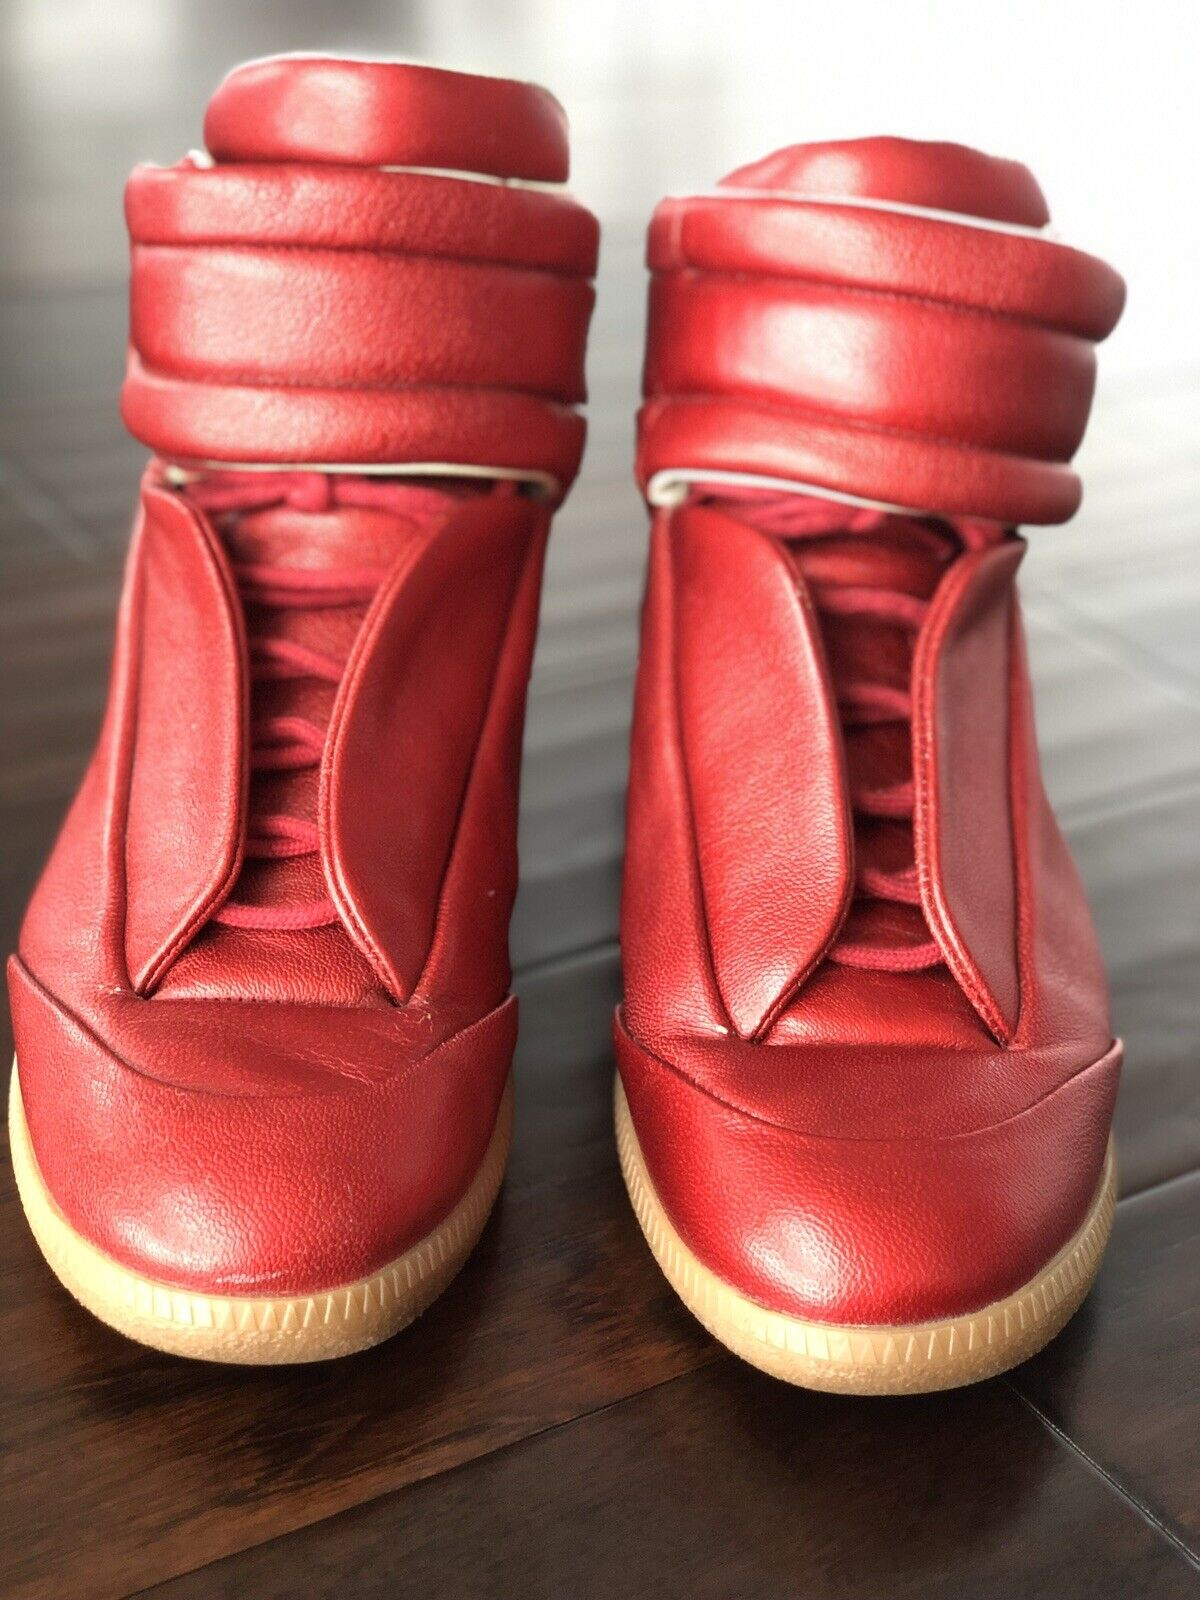 Maison Martin Margiela Future High Top Sneakers Red